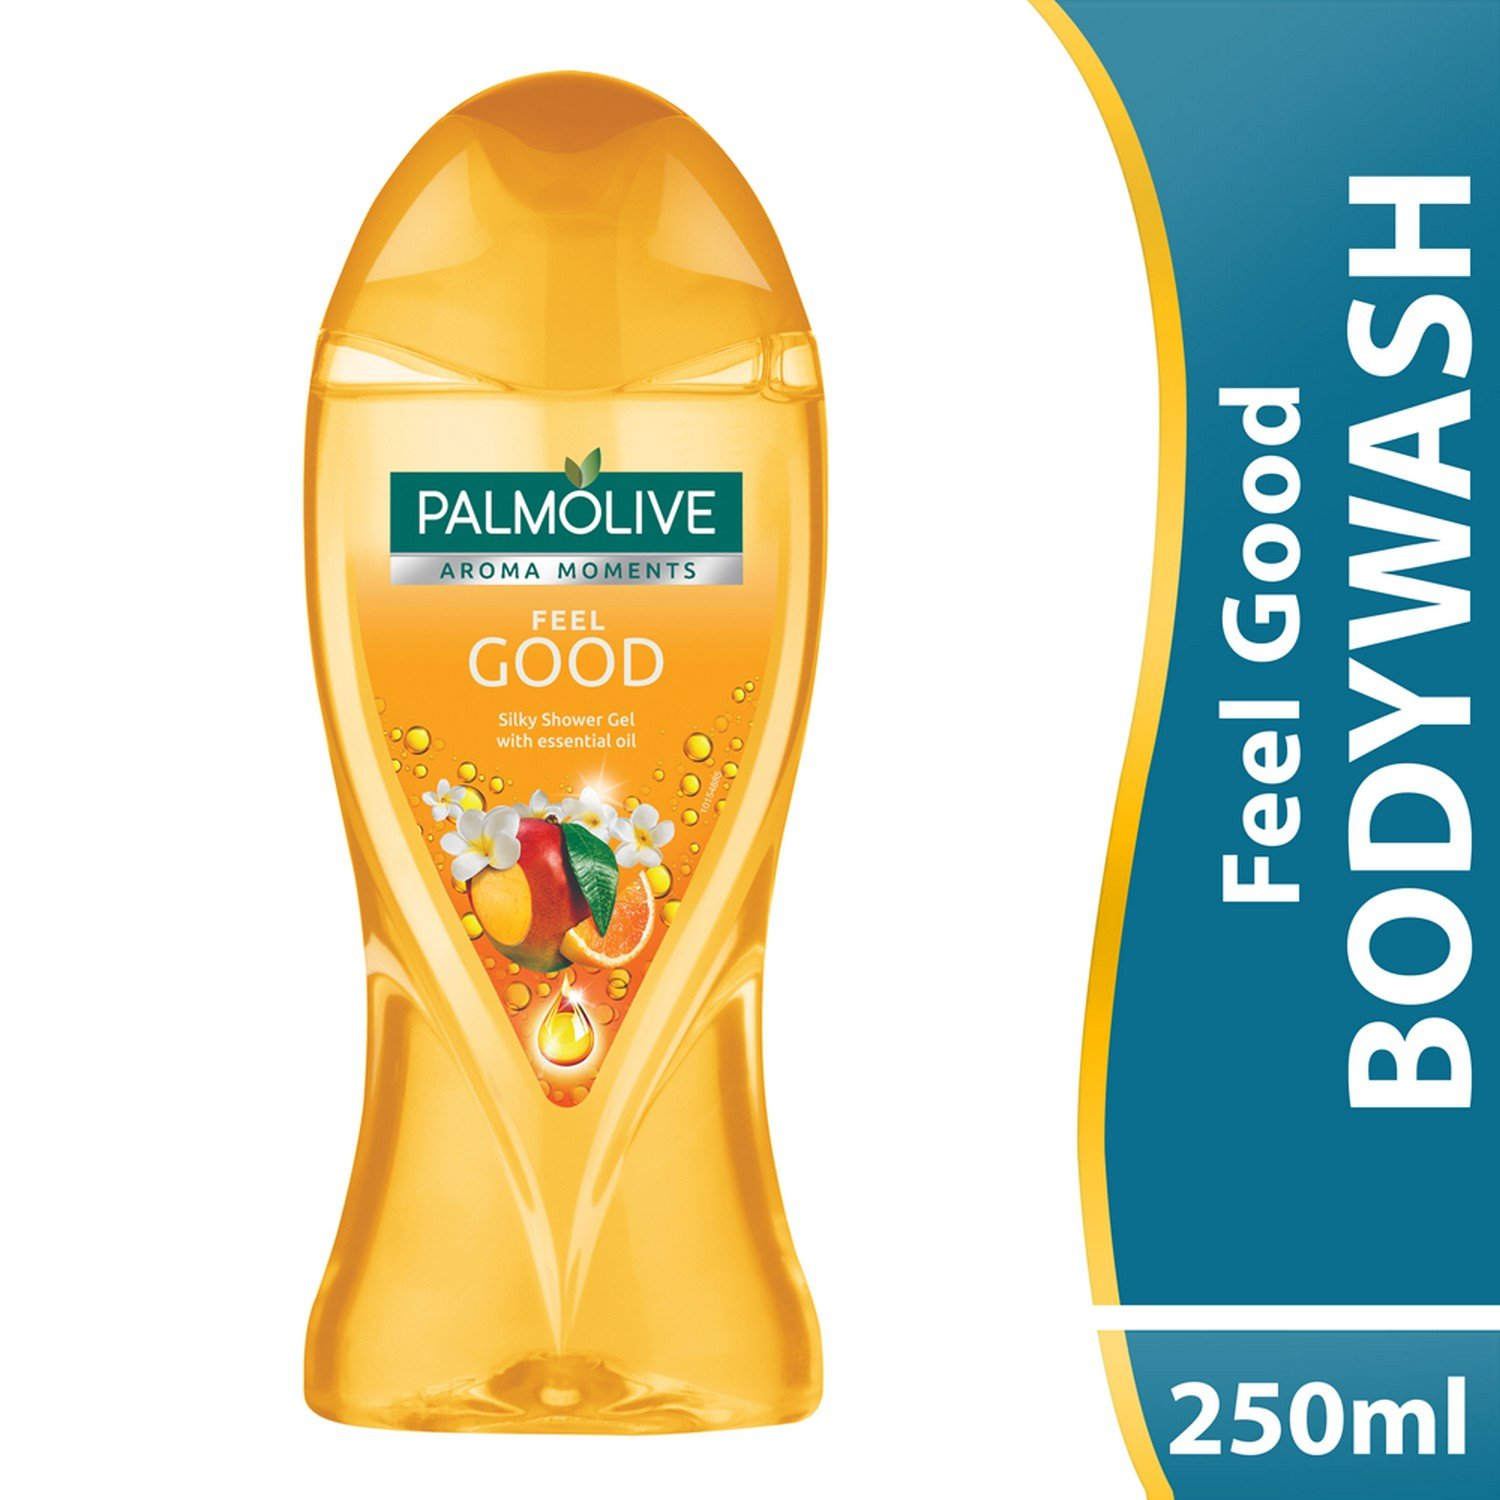 Palmolive Aroma Therapy Absolute Relax Shower Gel Sabun Mandi Morning Tonic 750ml Feel Good Essential Oil Bodywash 250ml Beauty Aromatheraphy